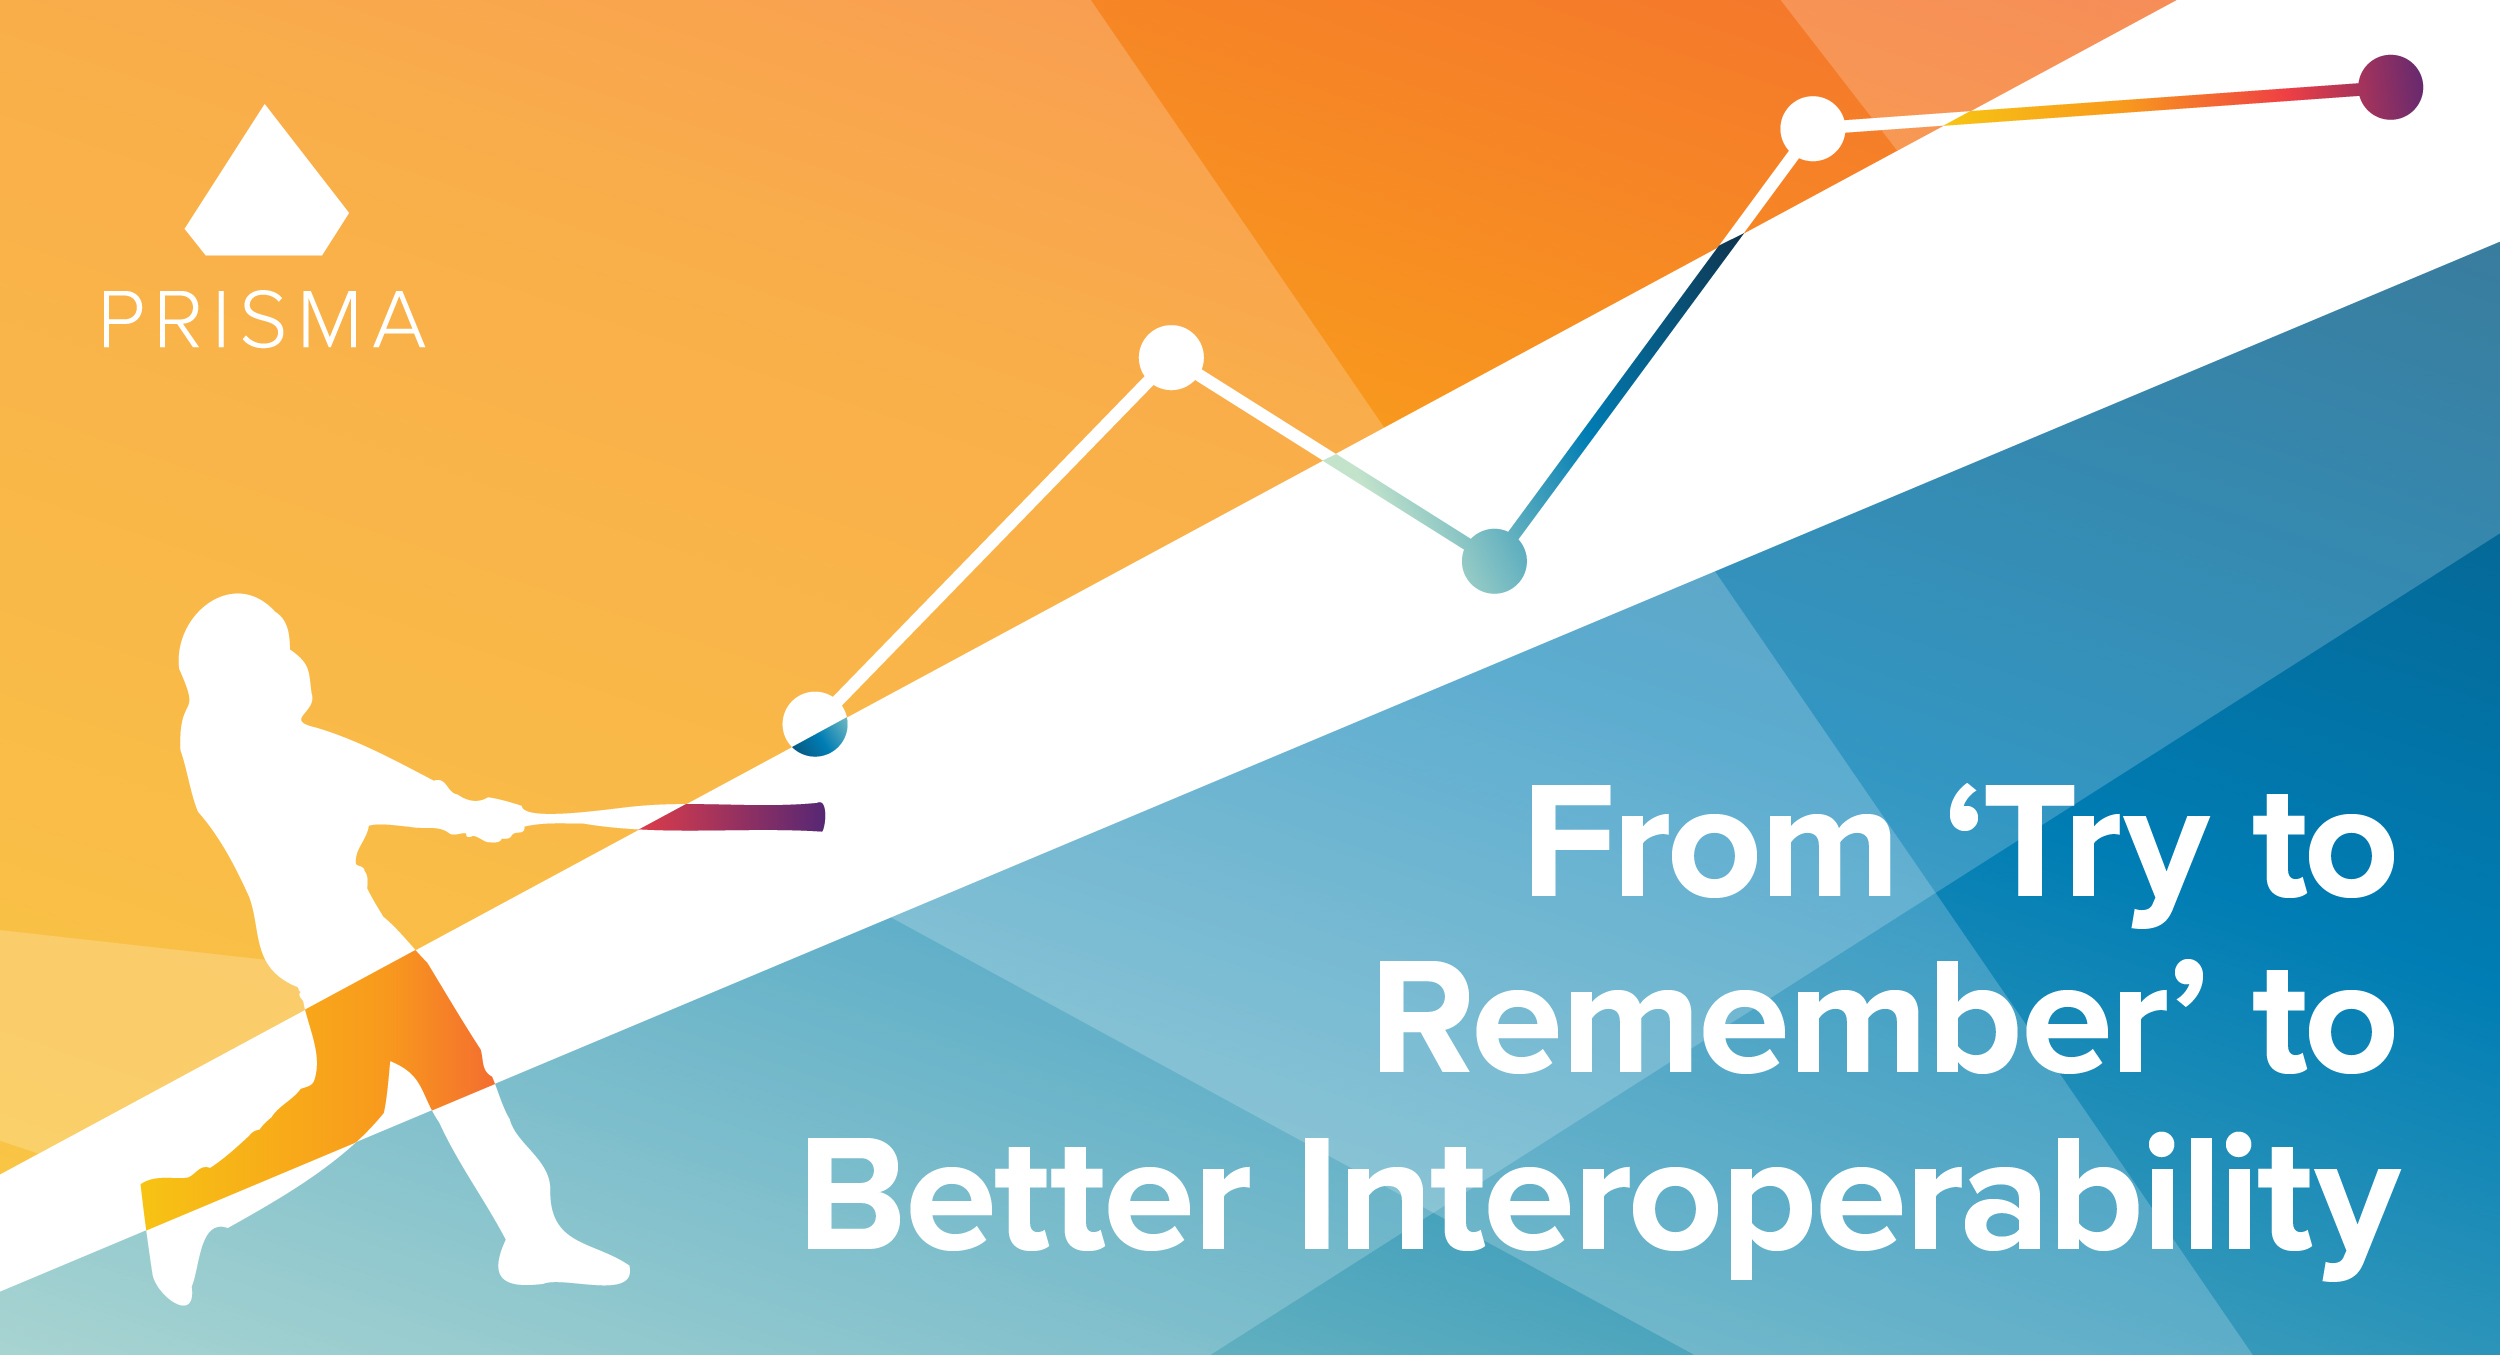 prisma-from-try-to-remember-to-better-interoperability-blog-headerline